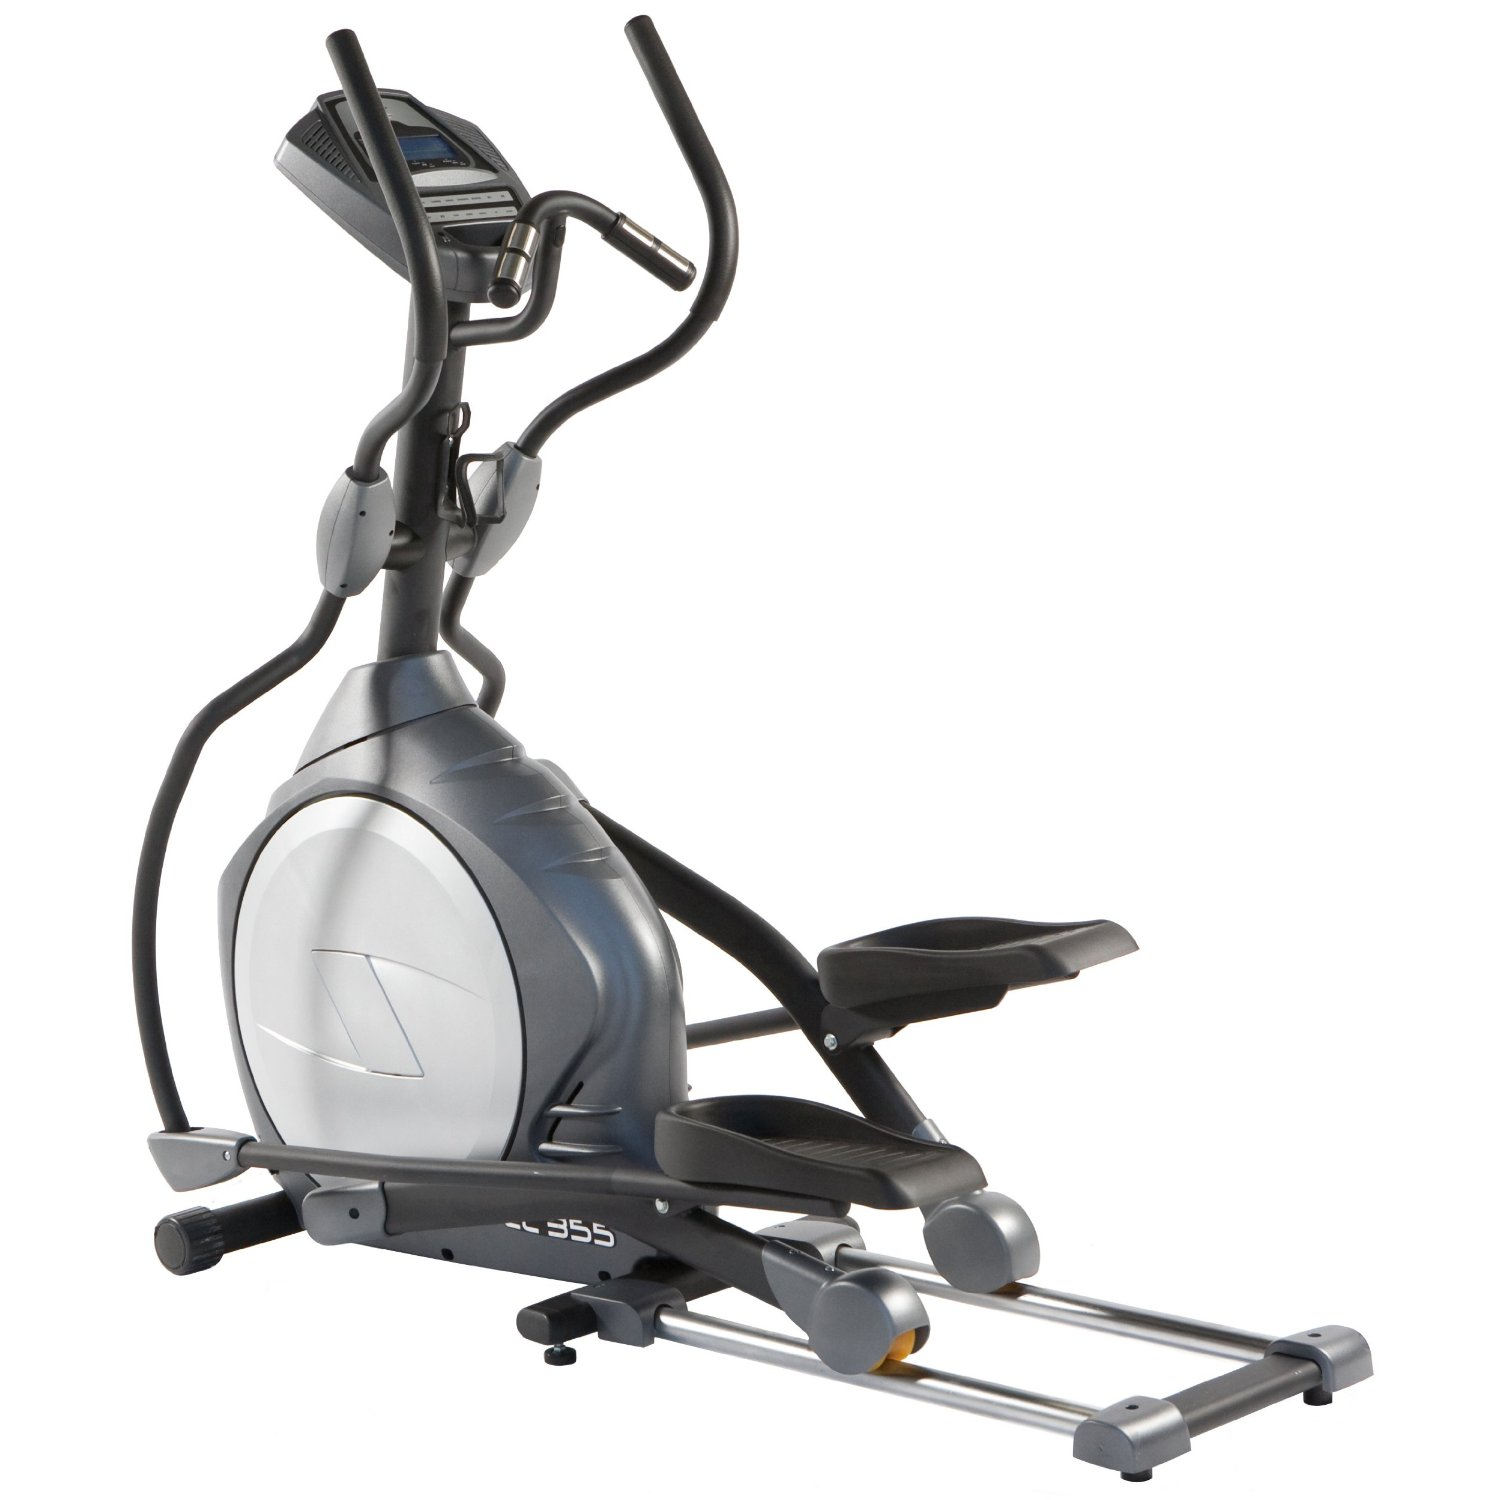 Spirit Esprit EL-355 20 Inch Stride Elliptical Review